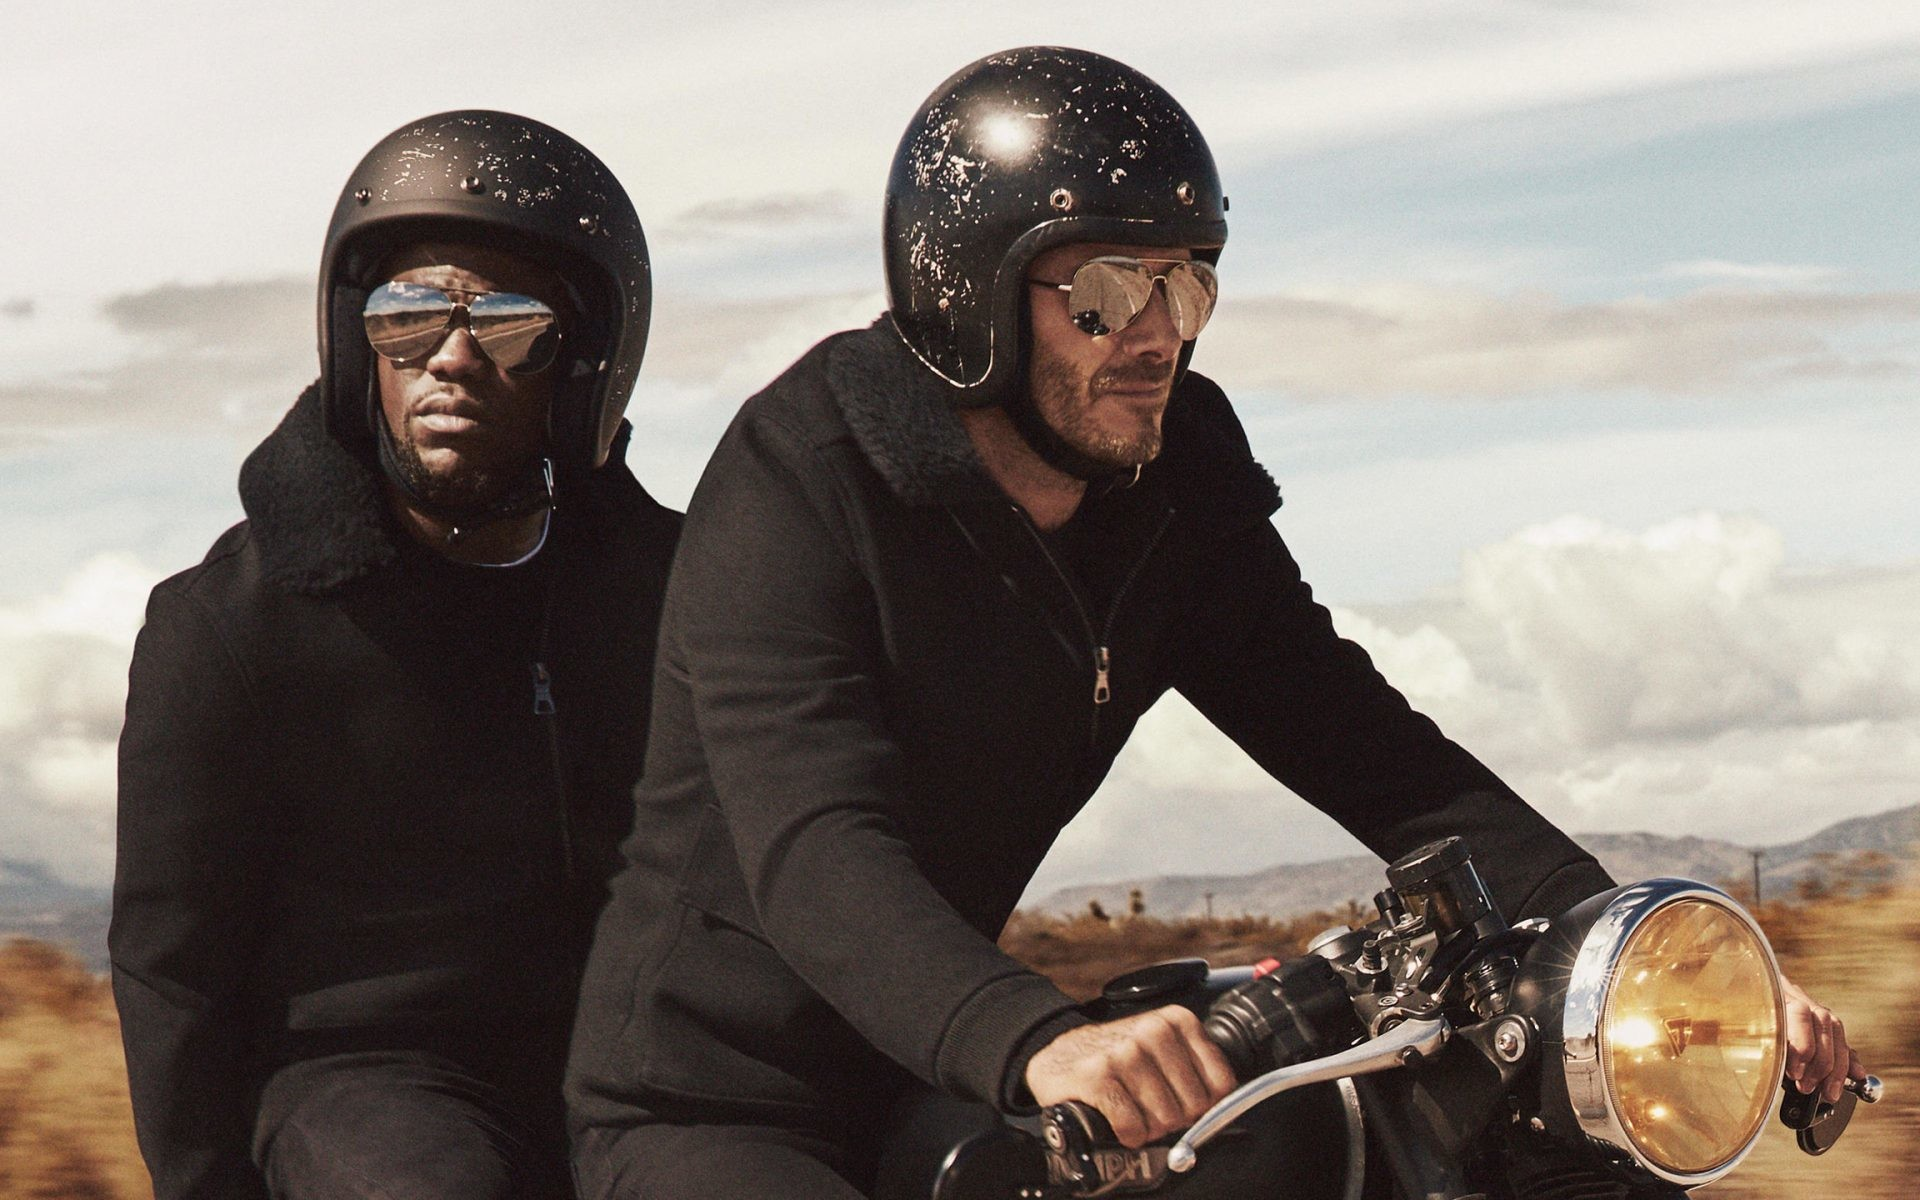 Res: 1920x1200, HD Wallpaper Of Kevin Hart And David Beckham On A Bike In The H&M  Commercial | PaperPull